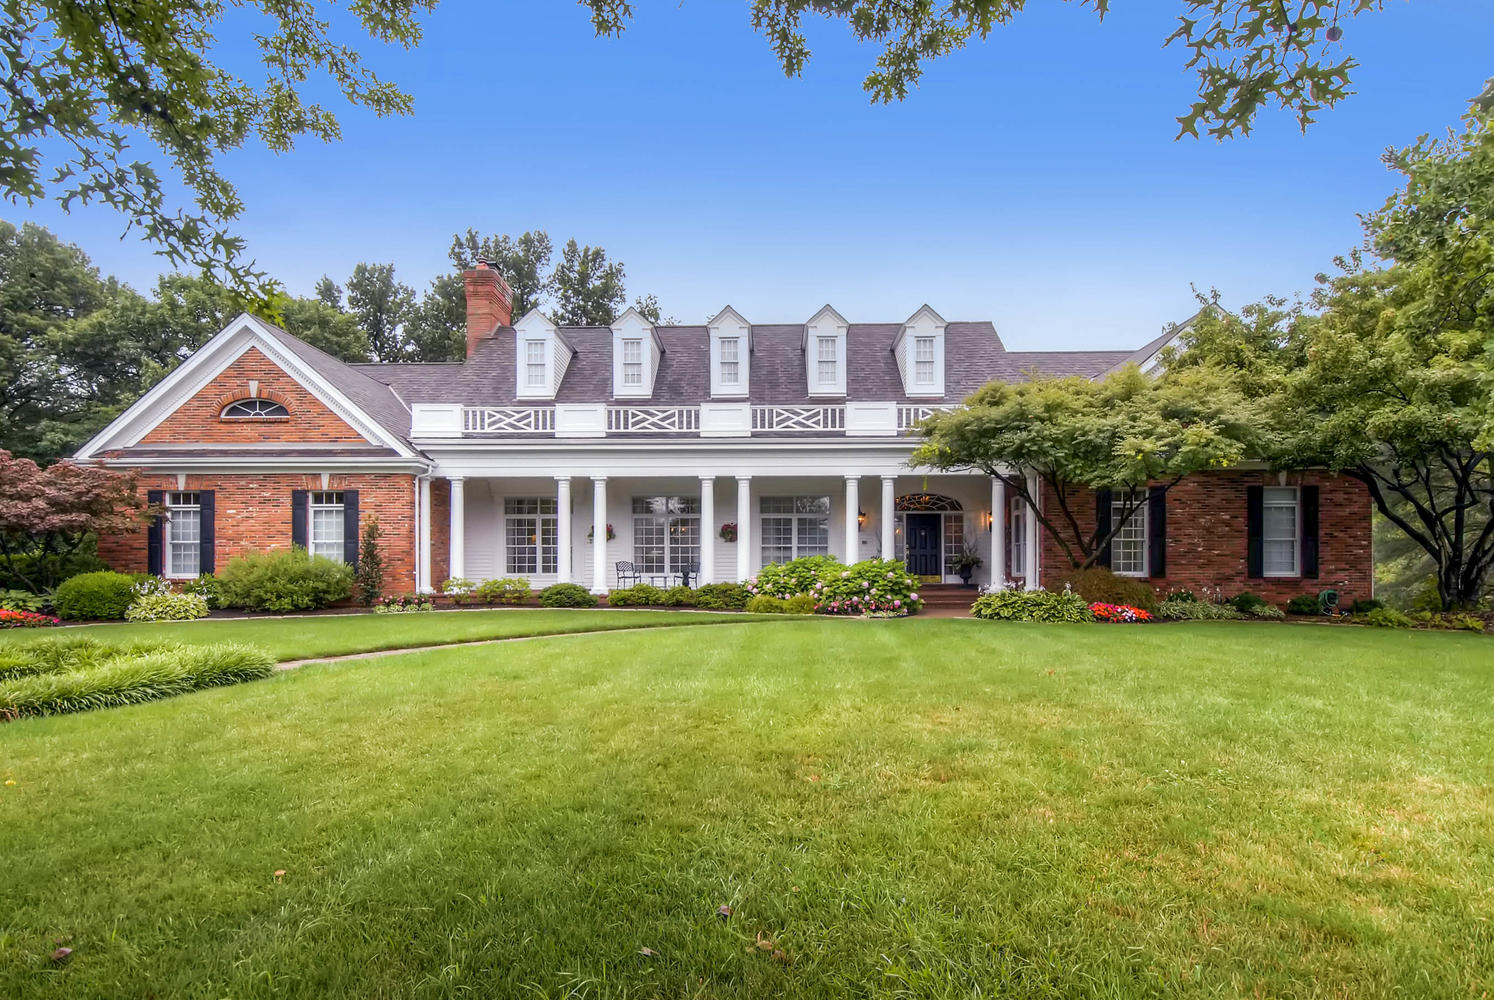 Single Family Homes for Sale at Magnificent Frontenac Renovation in Gated Community with Pool 49 Manderleigh Estates Court Frontenac, Missouri 63131 United States